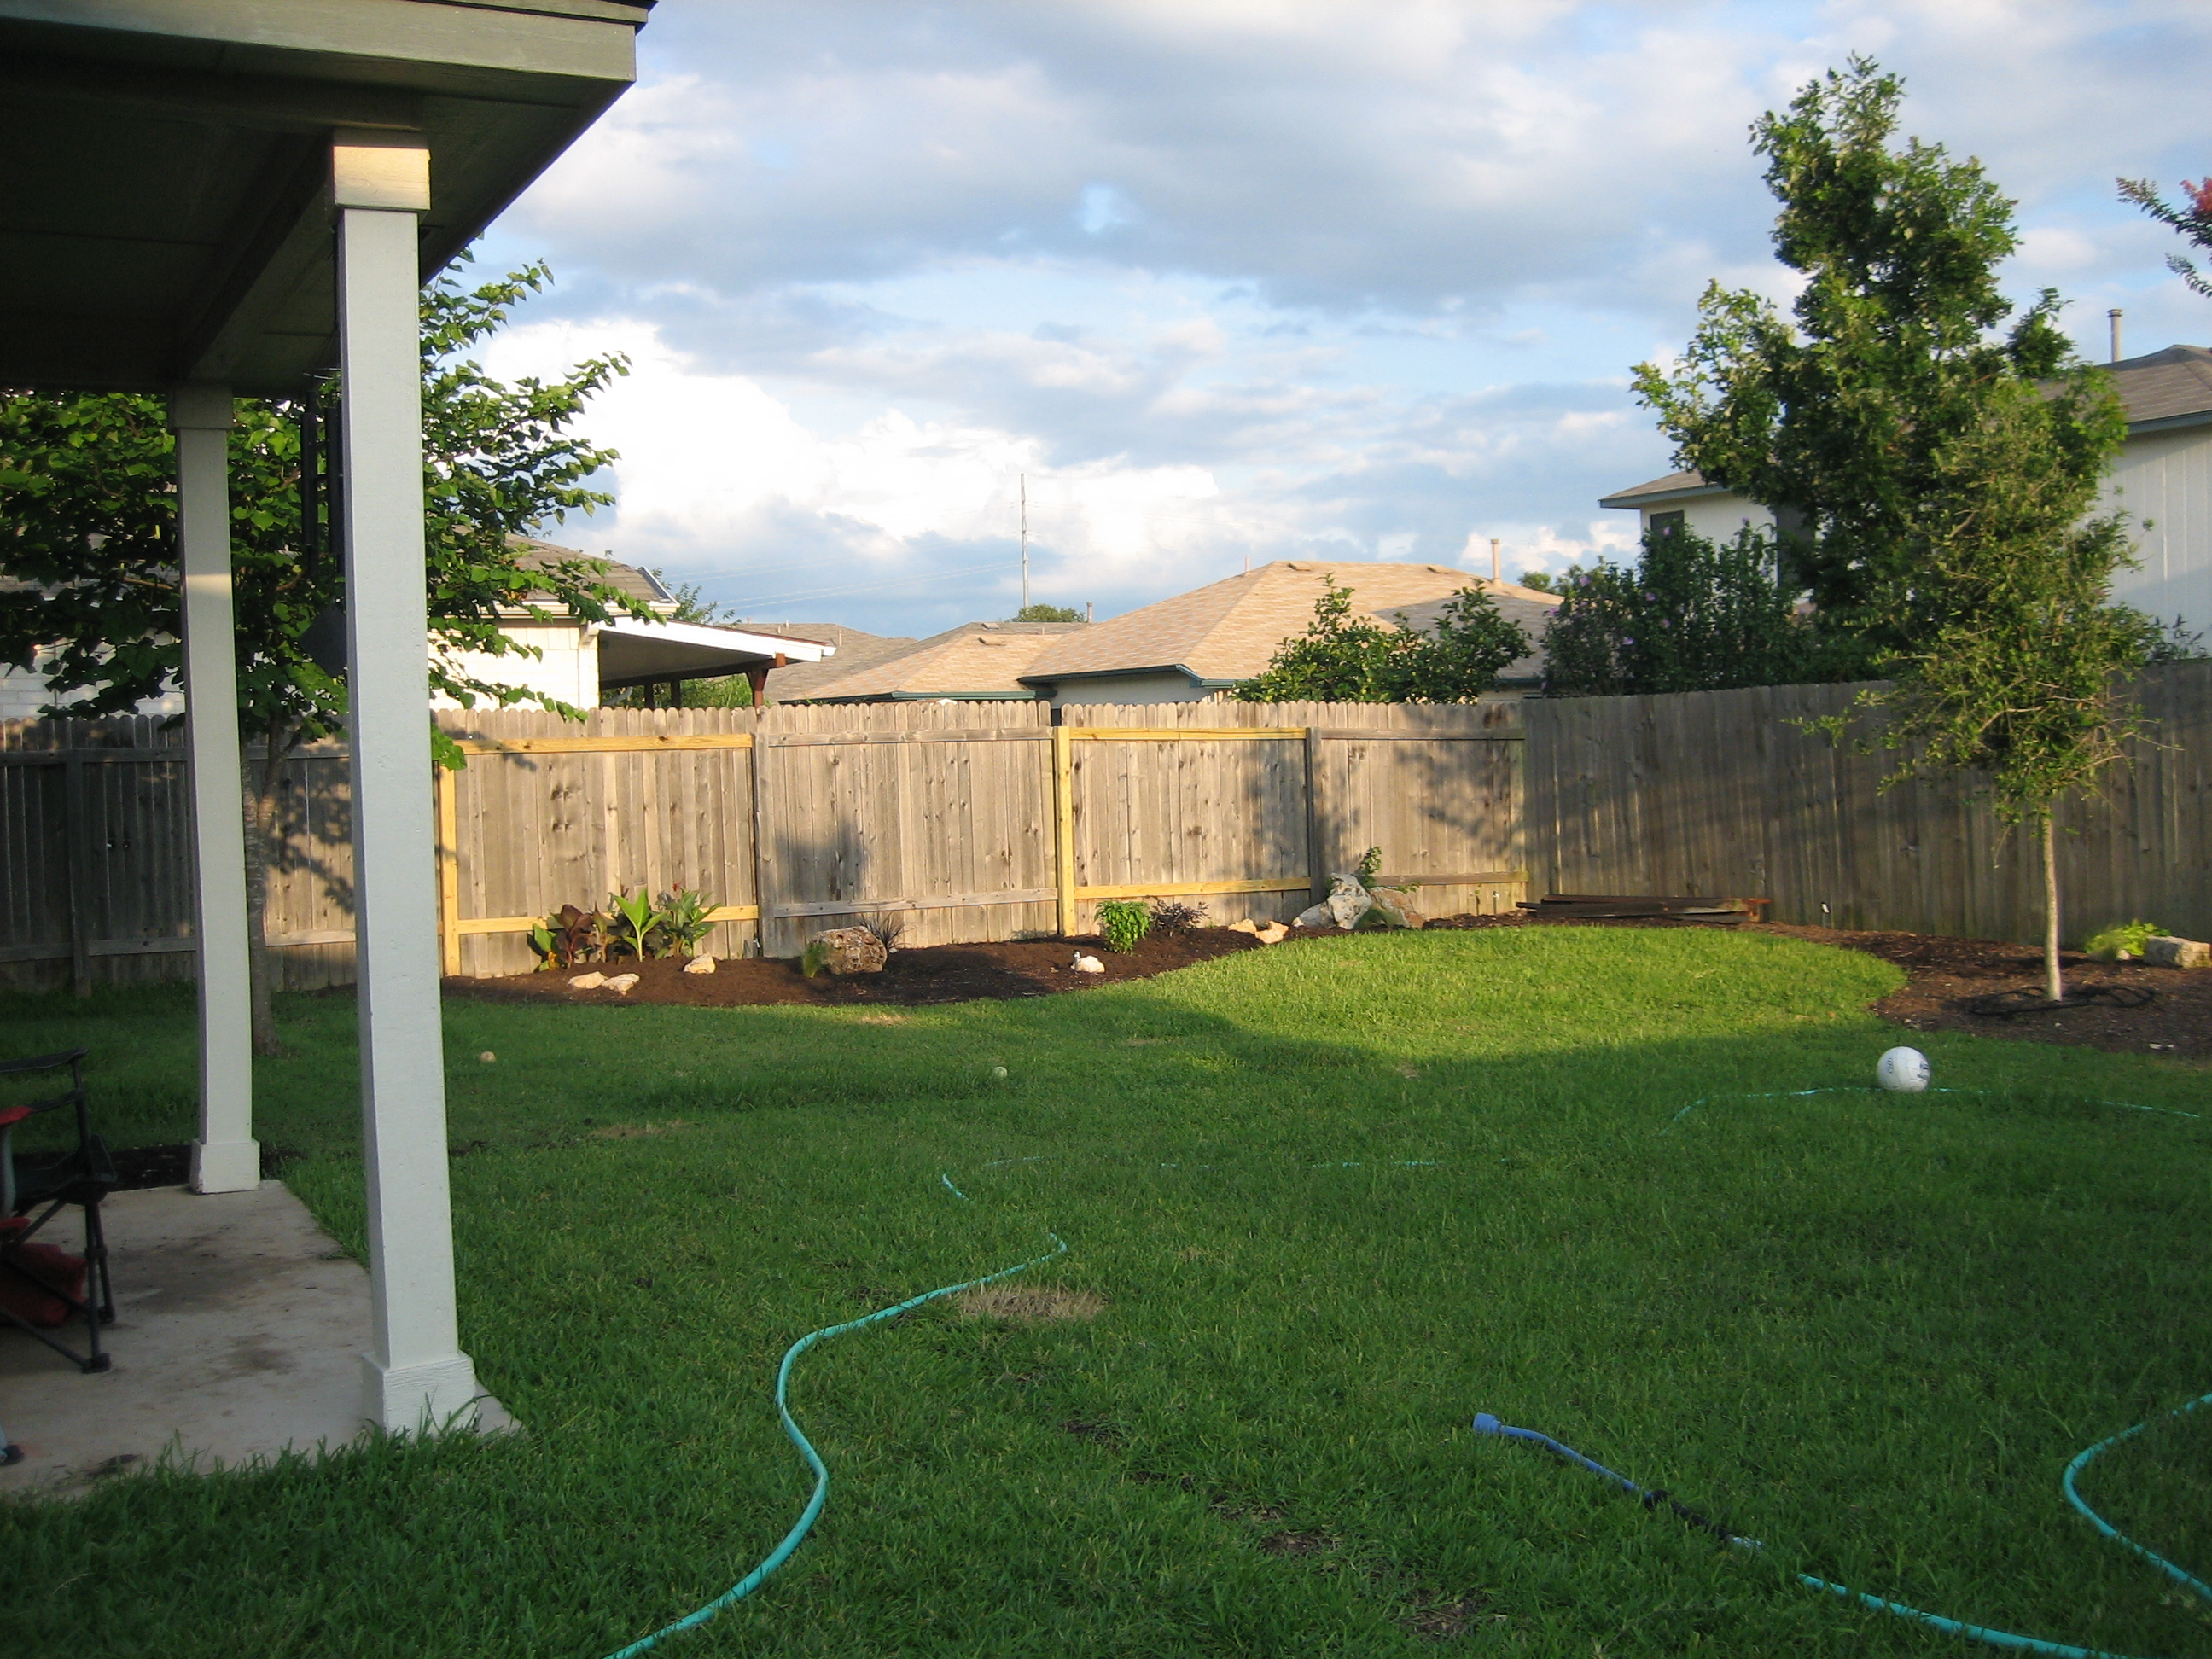 Planting trees-Growing Redbud to the left